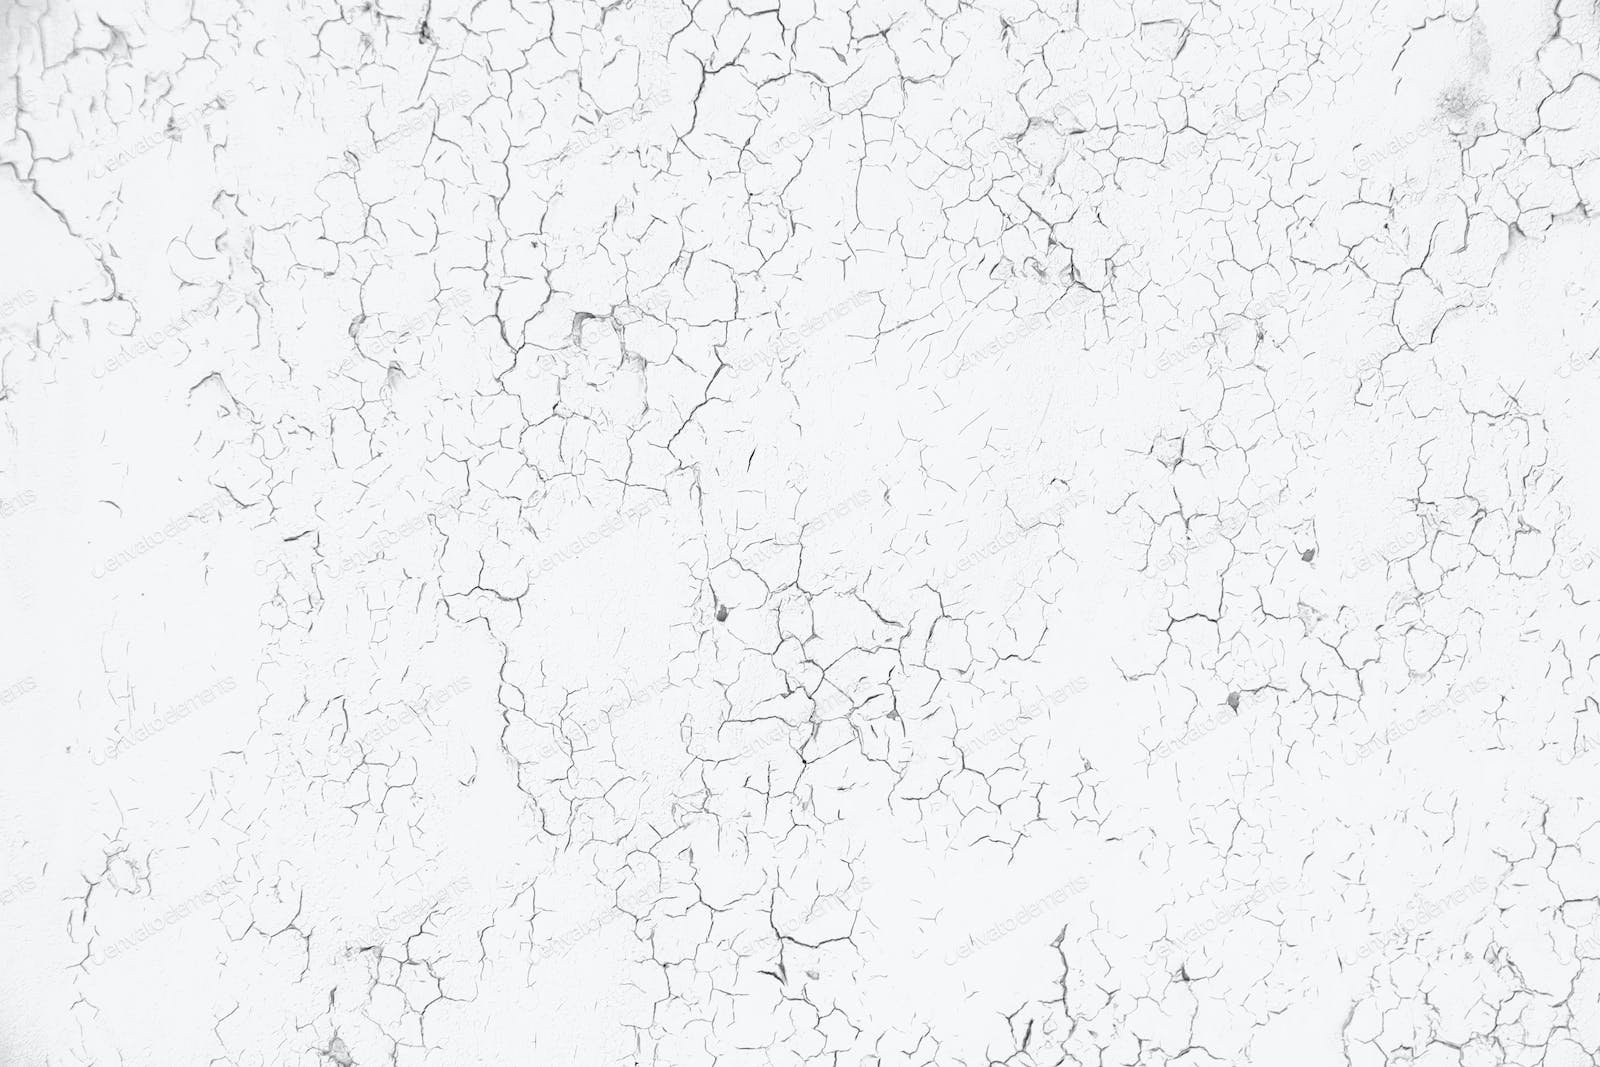 Cracked concrete wall texture photo by TasiPas on Envato Elements